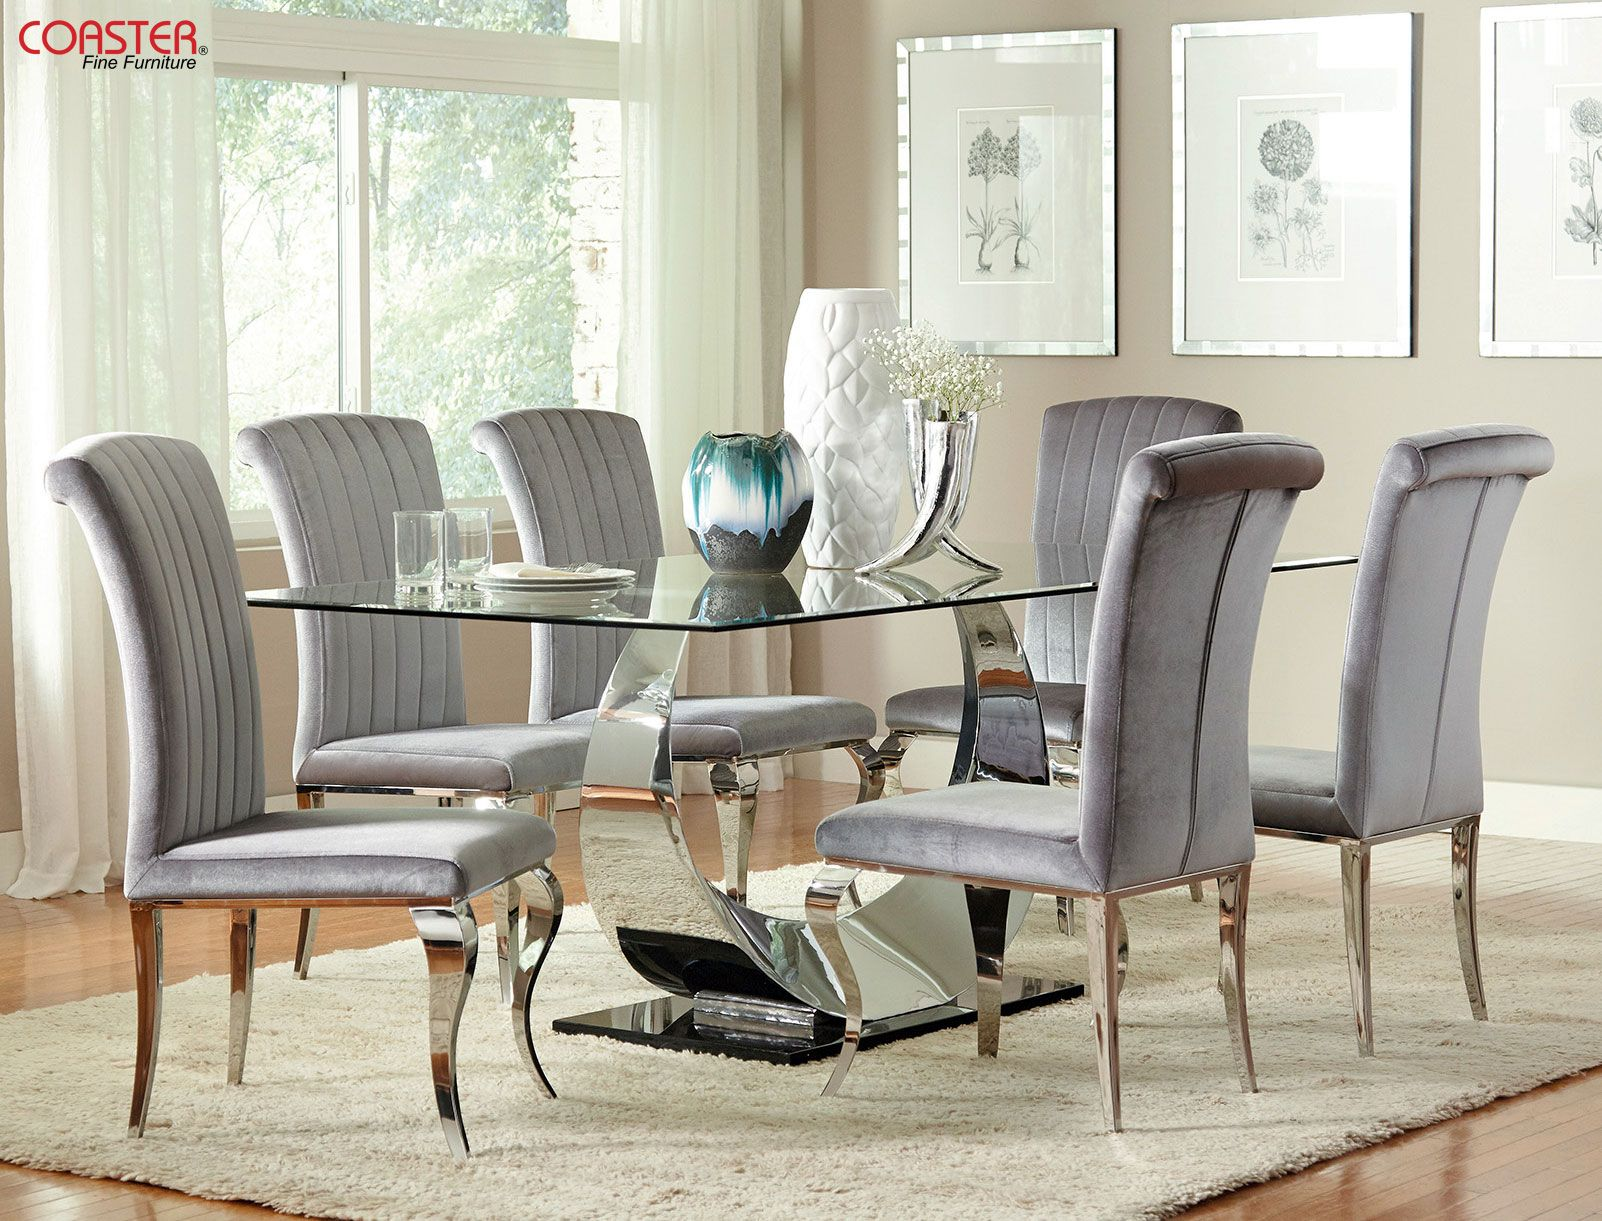 A Mix Of Elegant Modern And Timeless Design The Manessier Collection Is The Statement Set That Y Metal Base Dining Table Dining Table Cheap Dining Room Sets